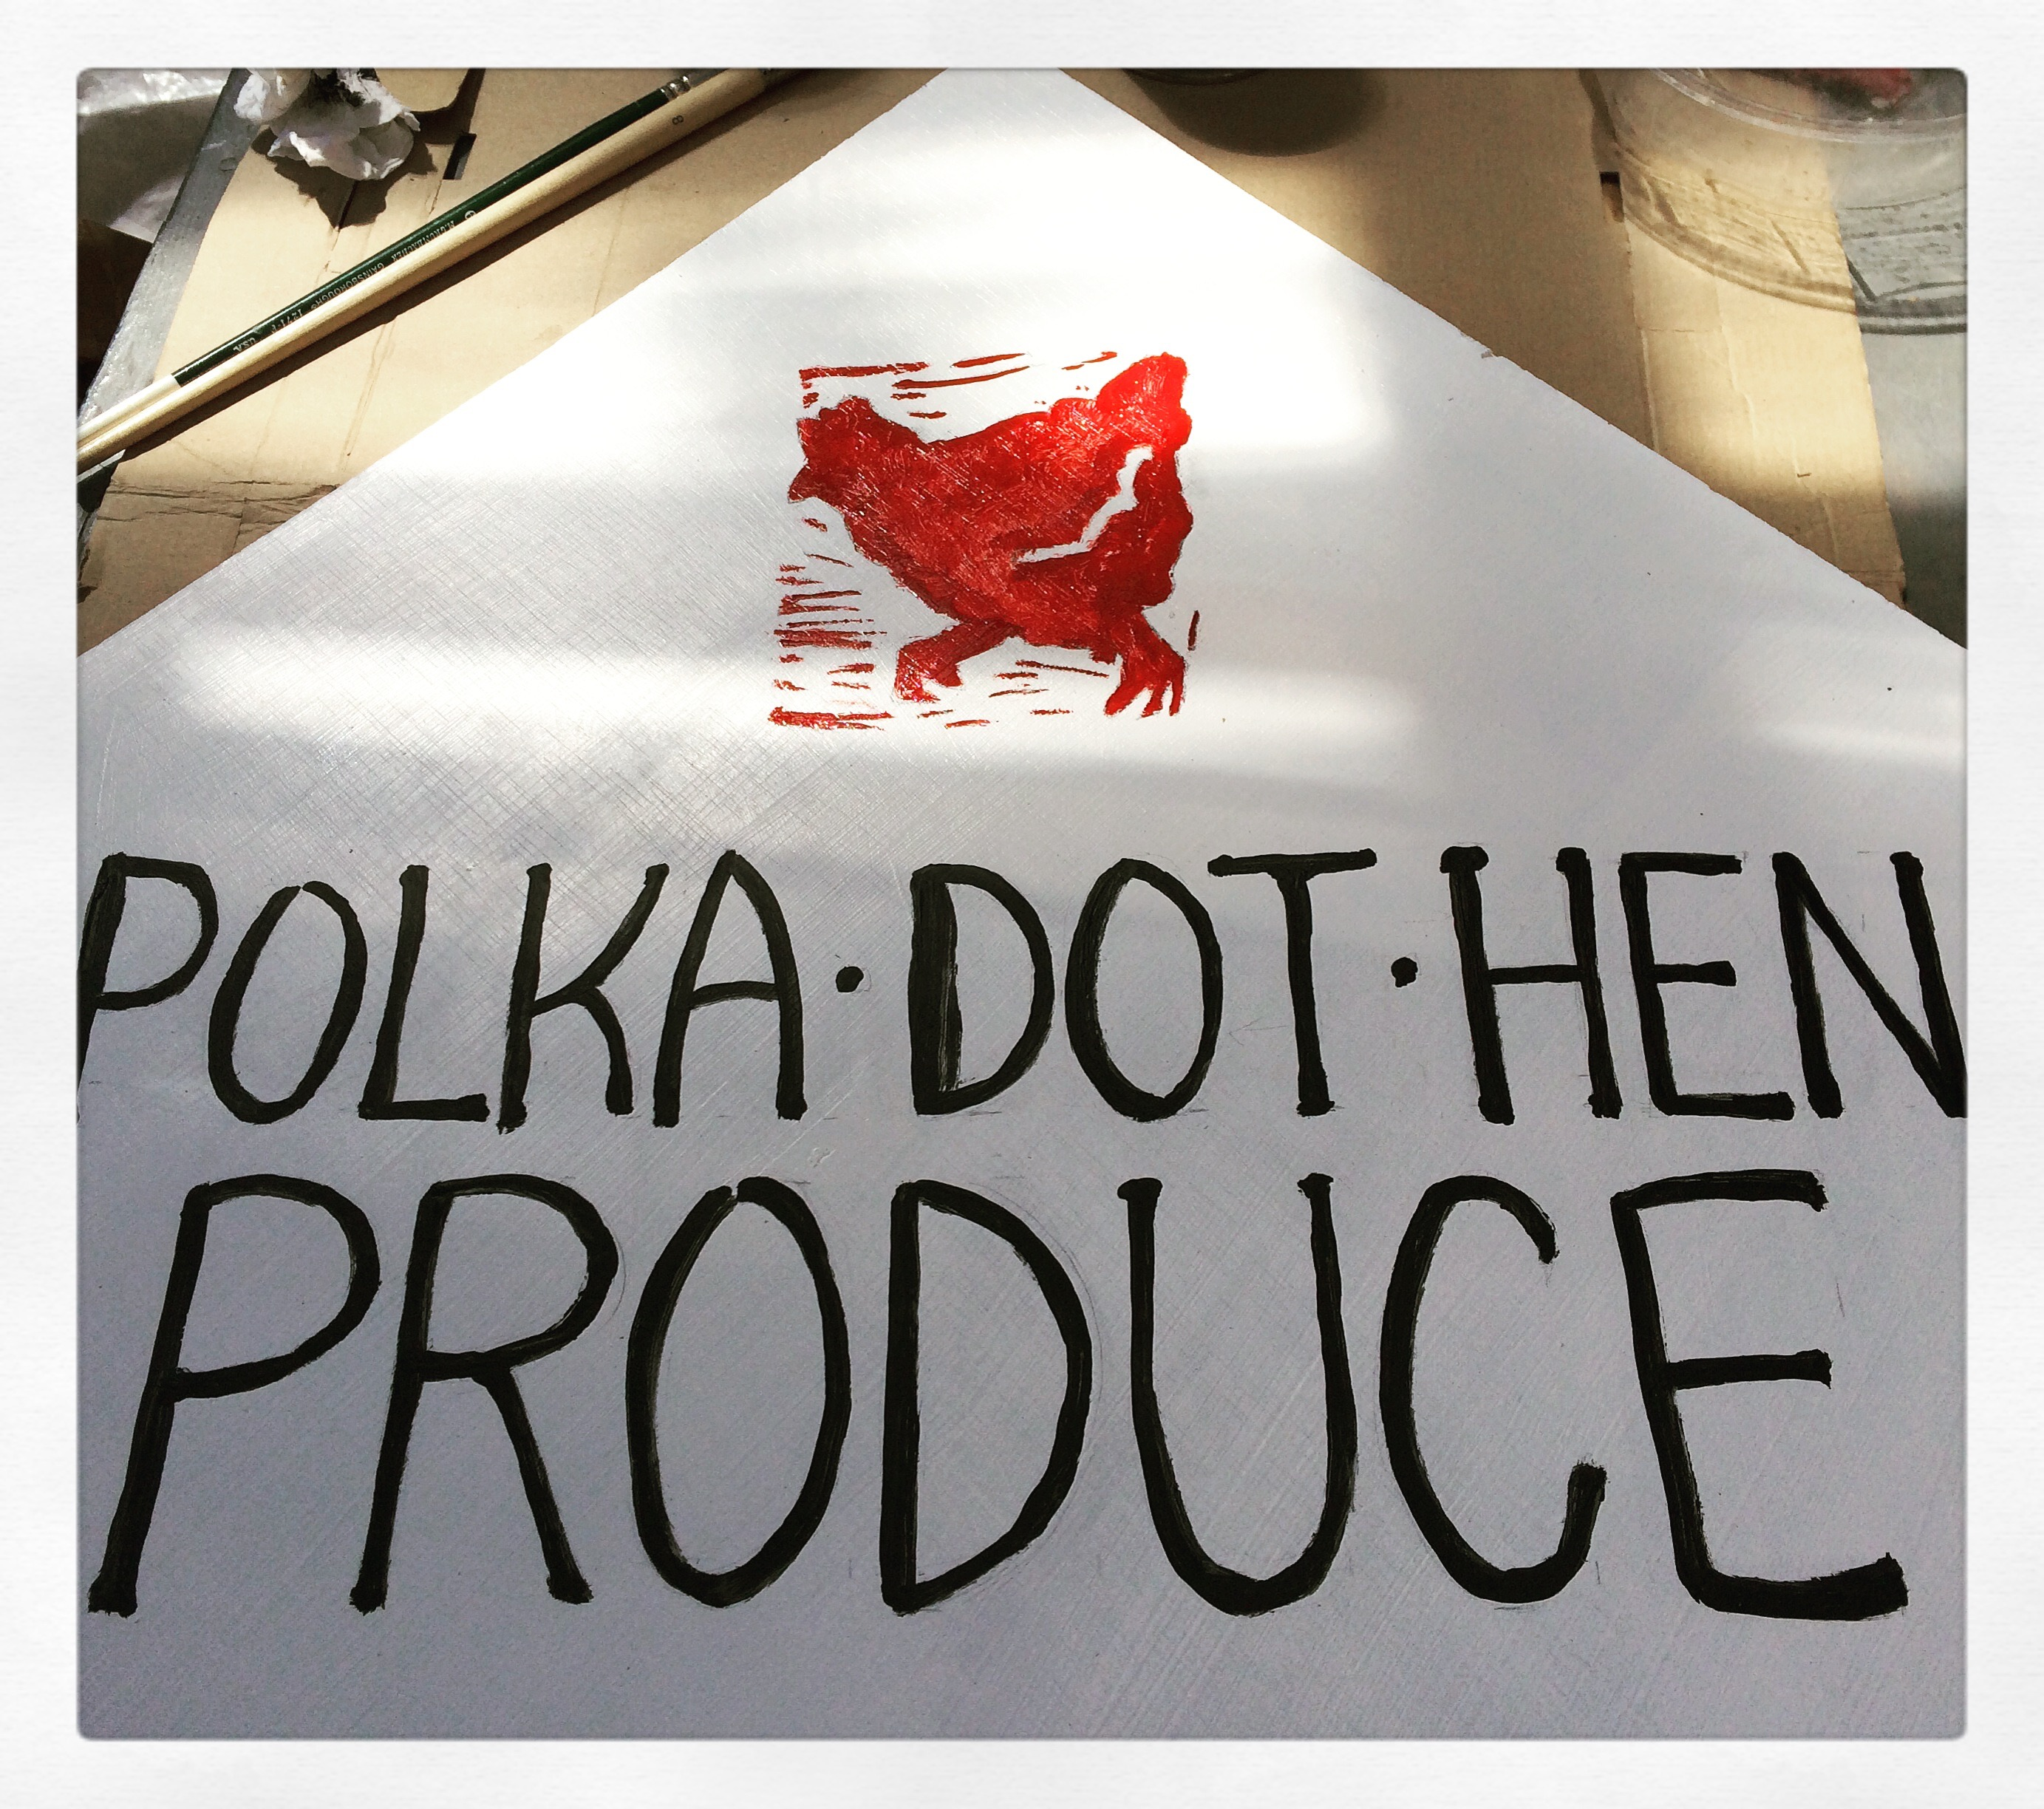 Polka Dot Hen Produce hand painted sign